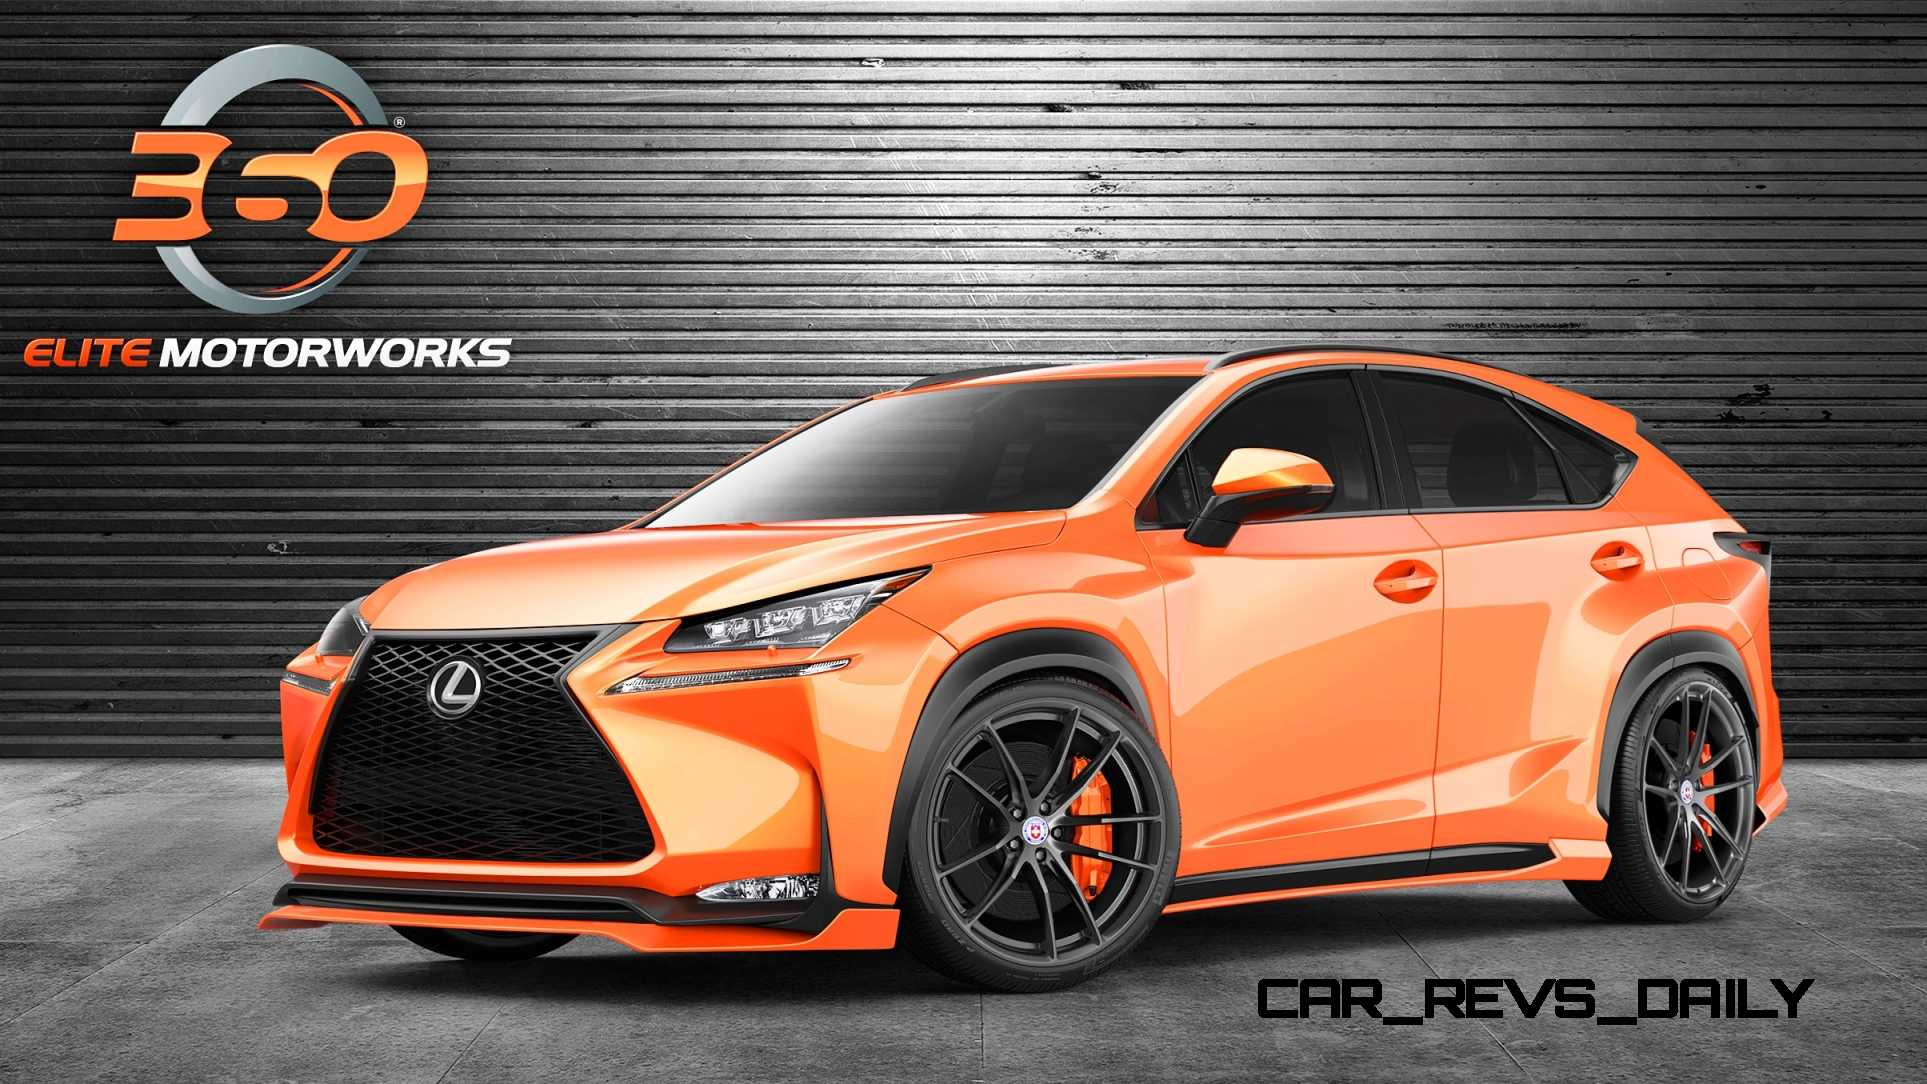 LEXUS NX 300H 2016 OWNERS MANUAL Pdf Download